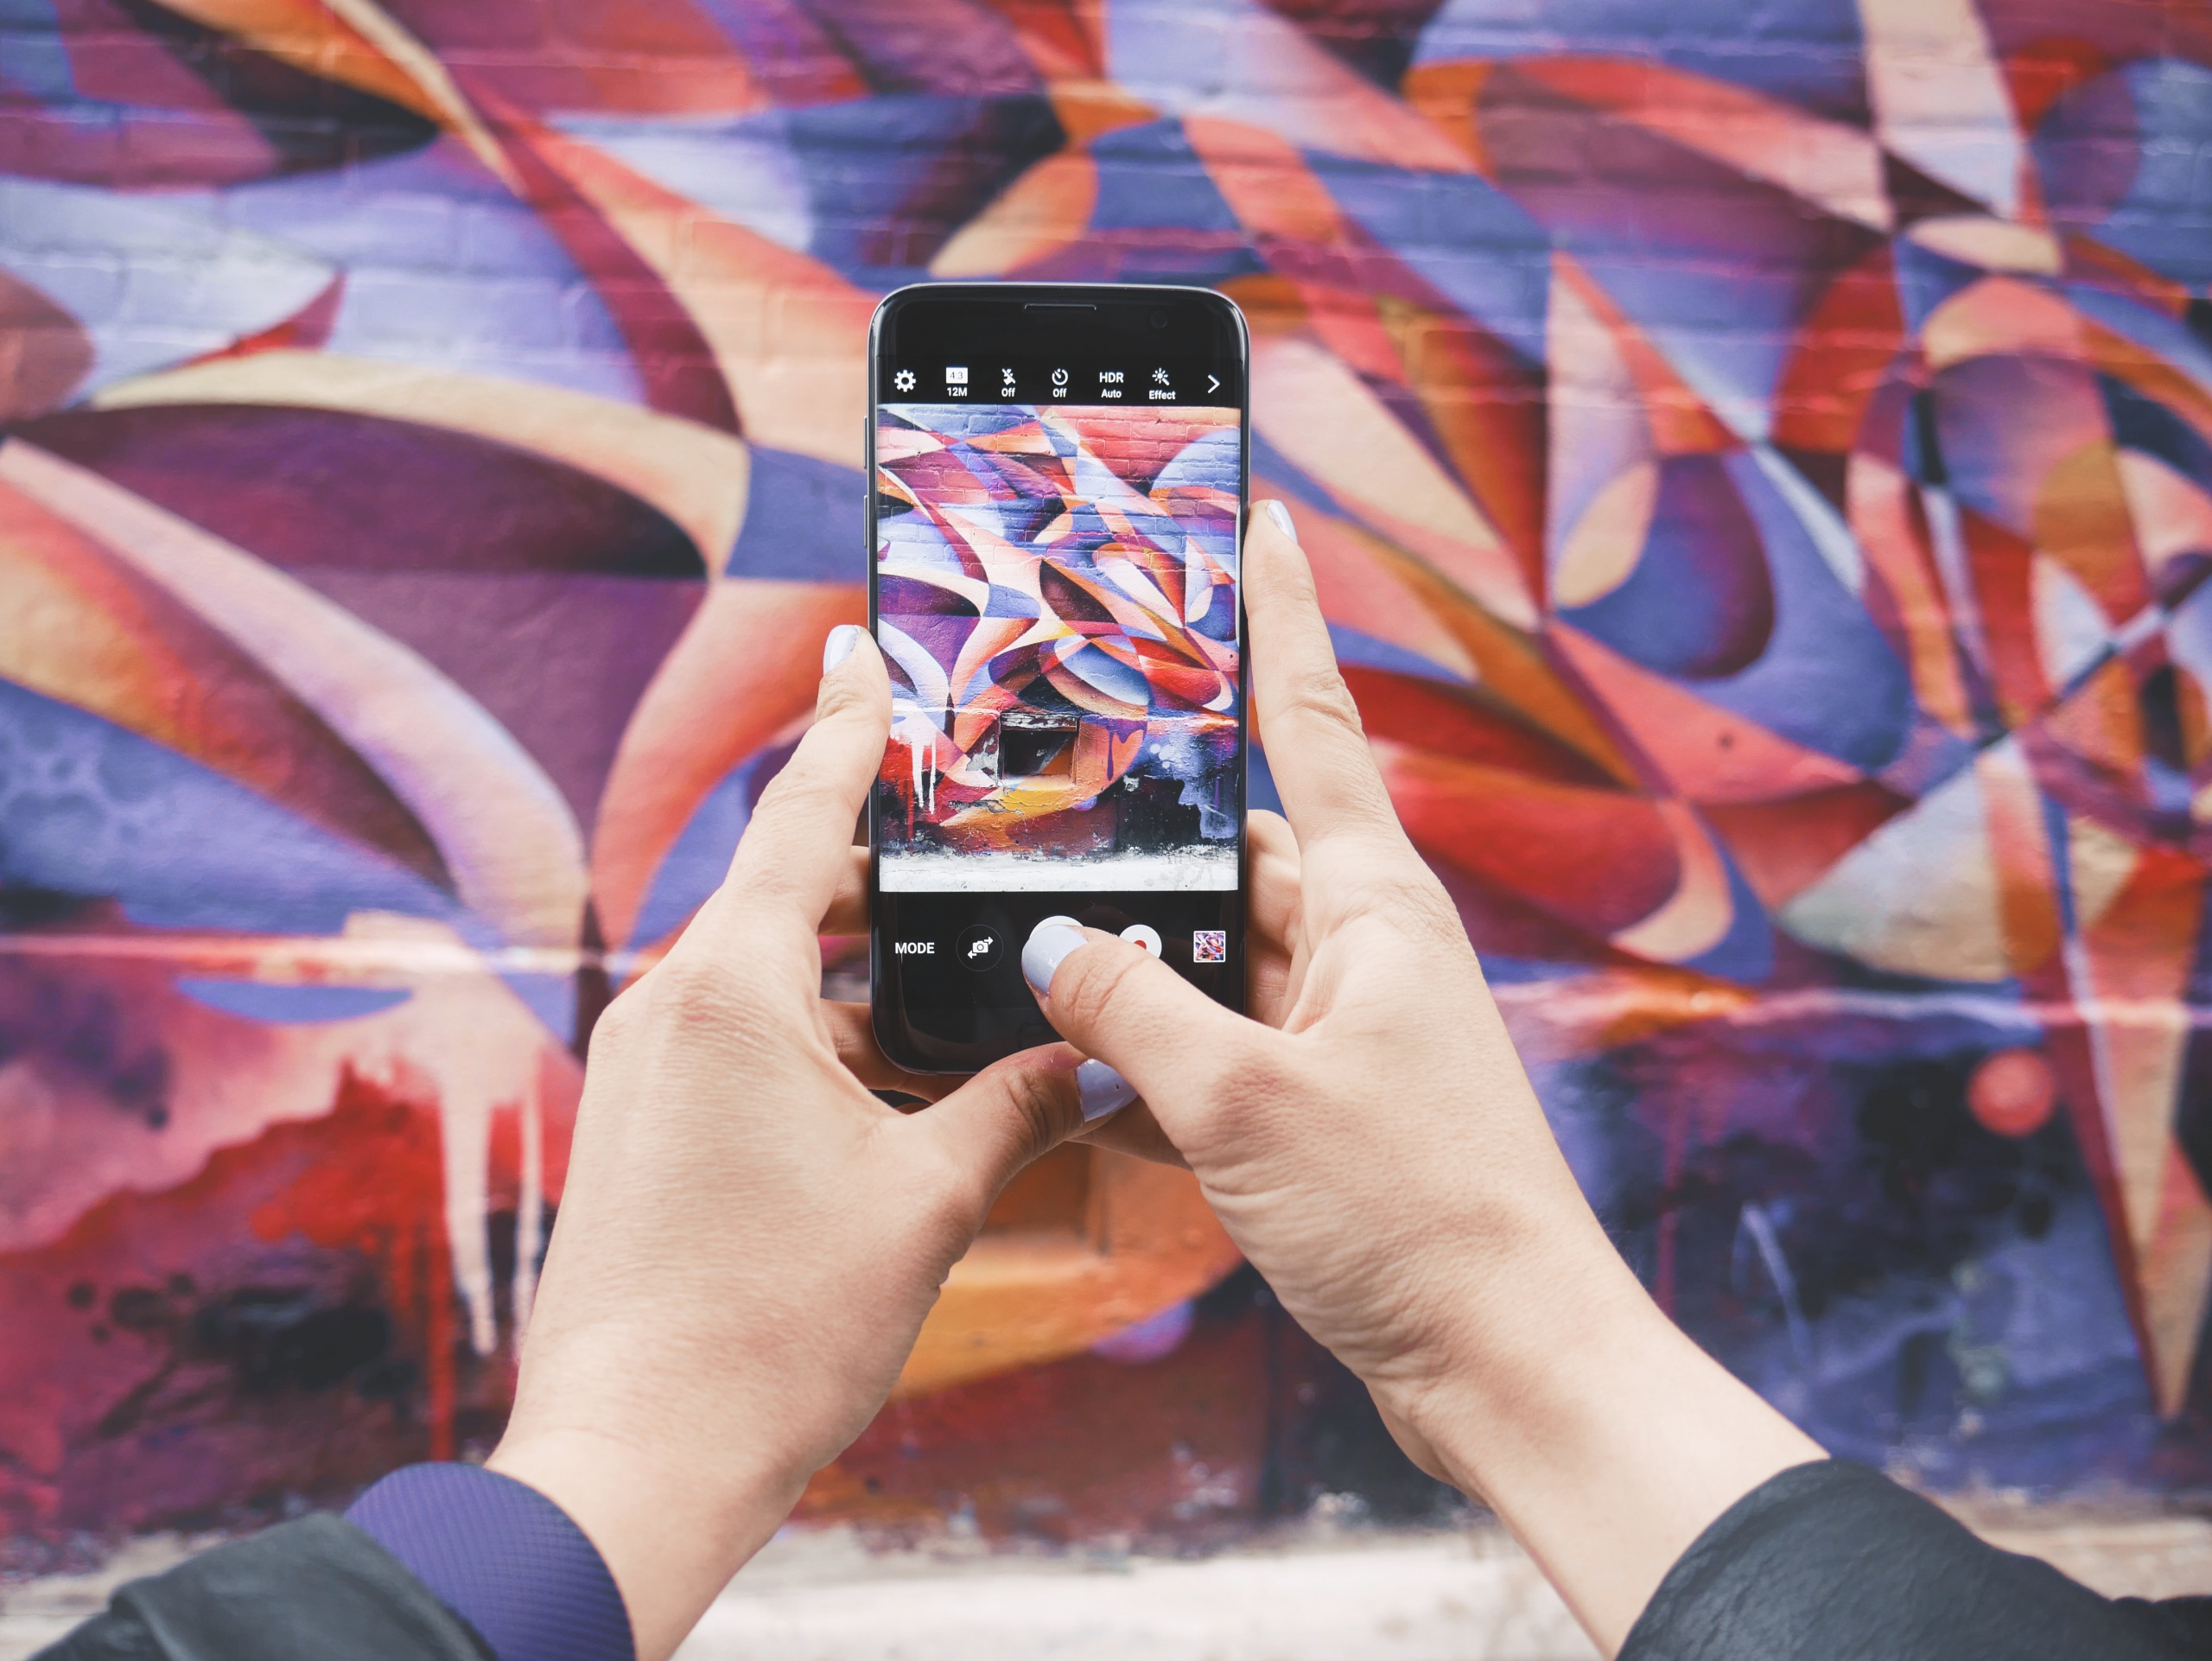 How to grow your Instagram Account Organically